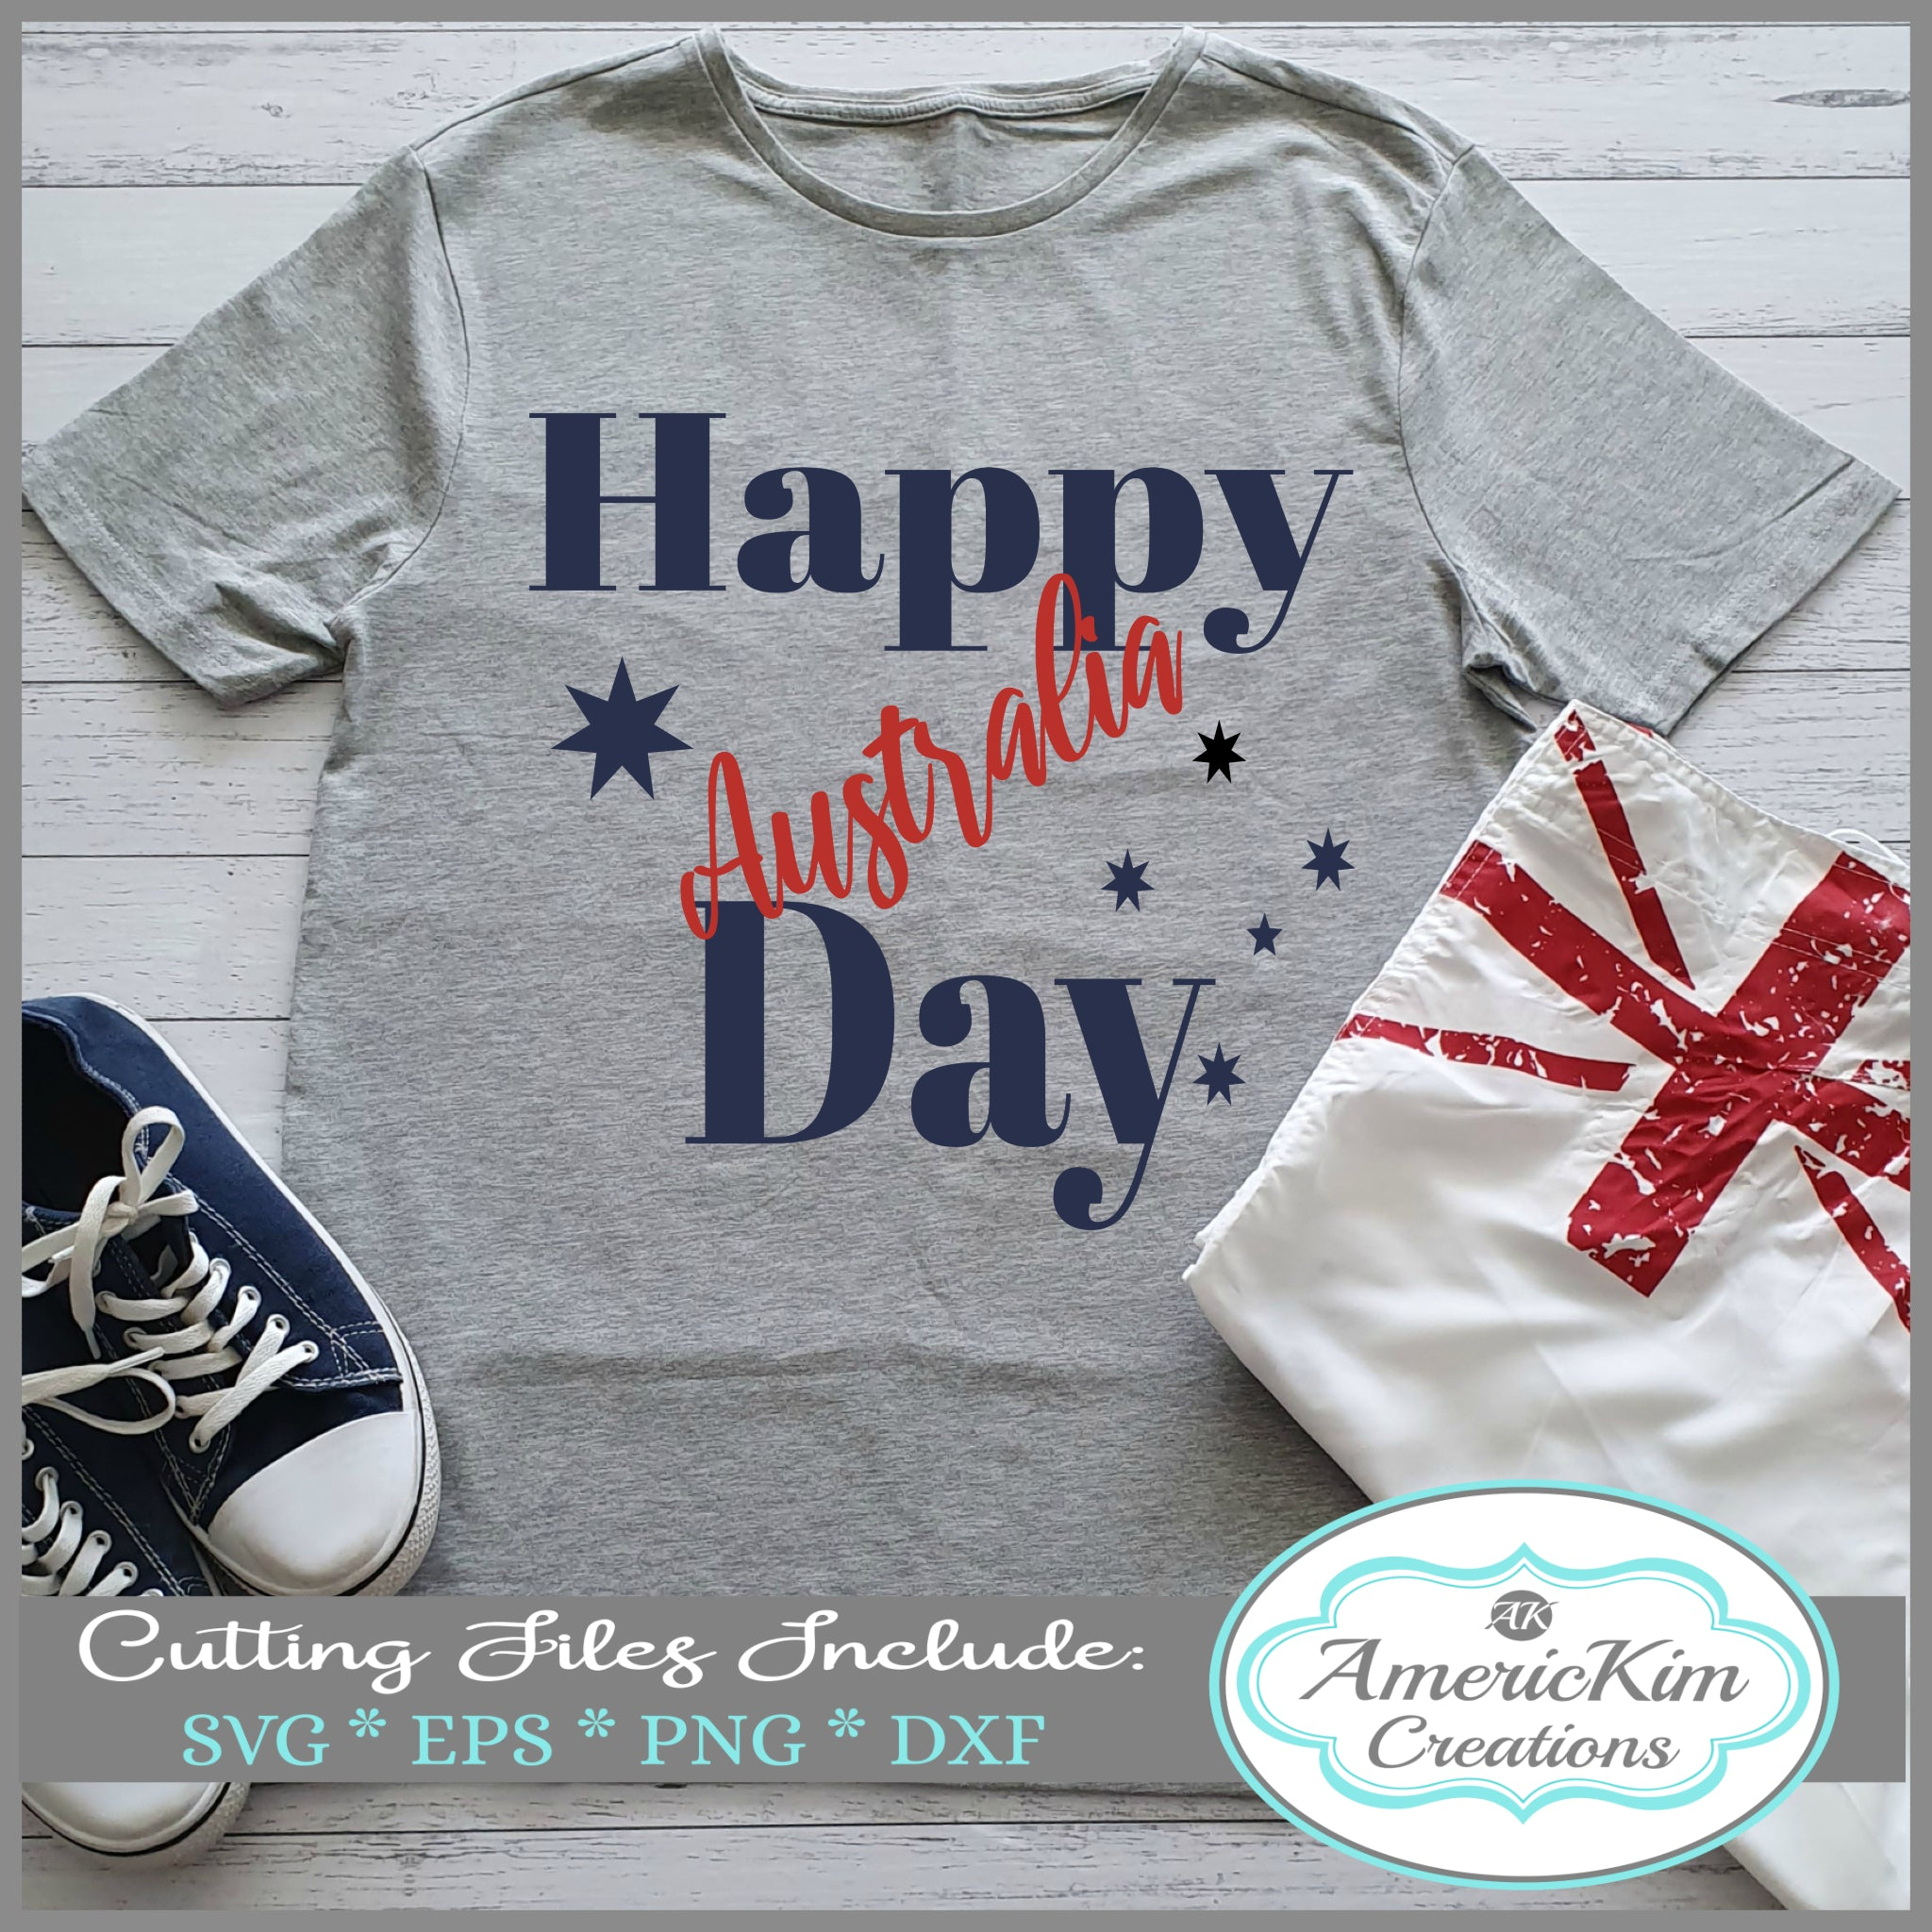 Happy Australia Day SVG File for Australia Day